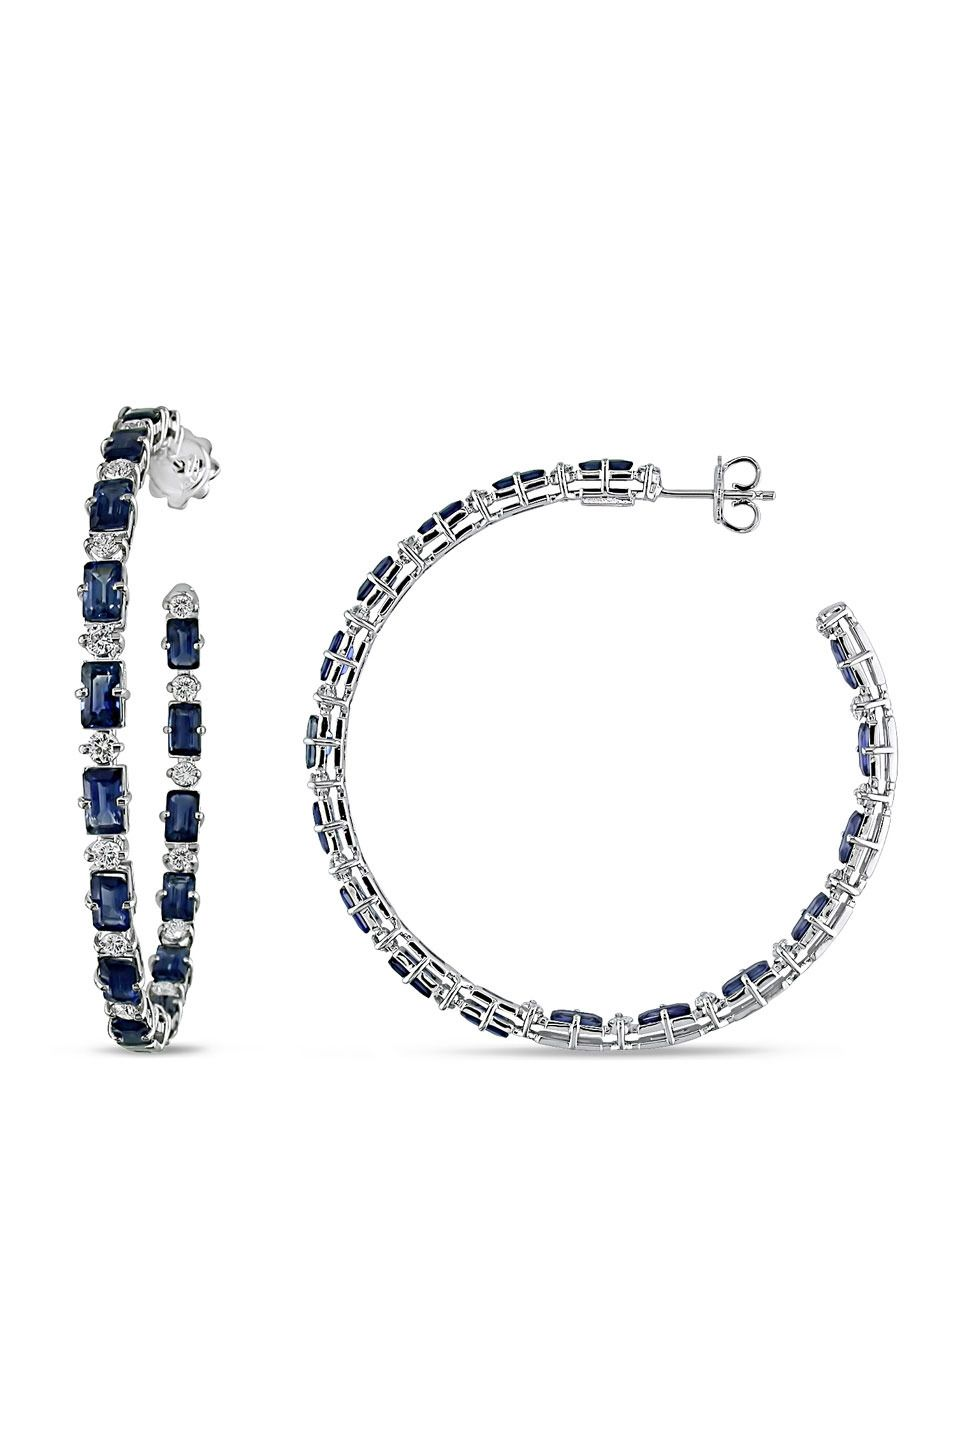 aa0c437ae5c11a From the Vault 0.875 ct Diamond & Sapphire Hoop Earrings in 18k White Gold  - Beyond the Rack